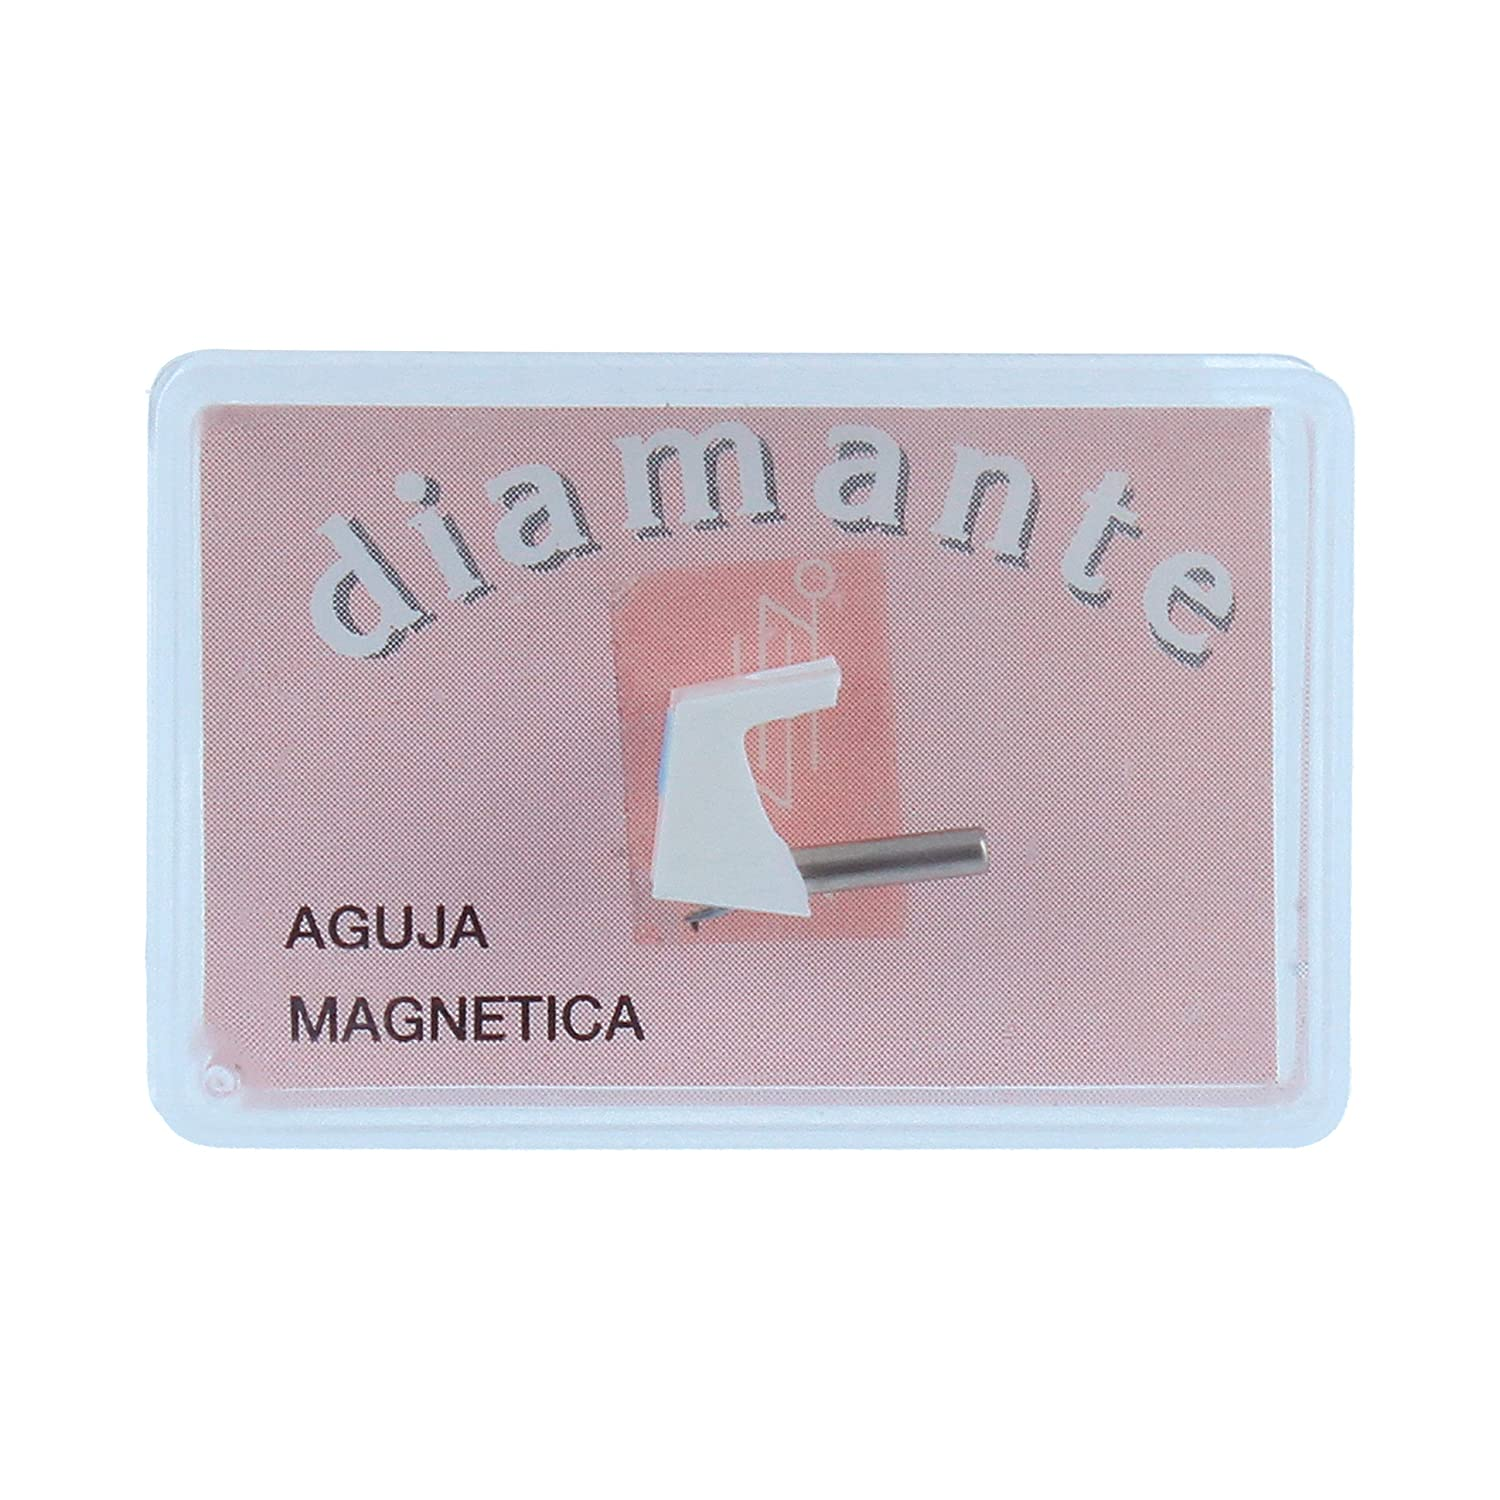 Aguja giradiscos Diamante AGD500 color gris